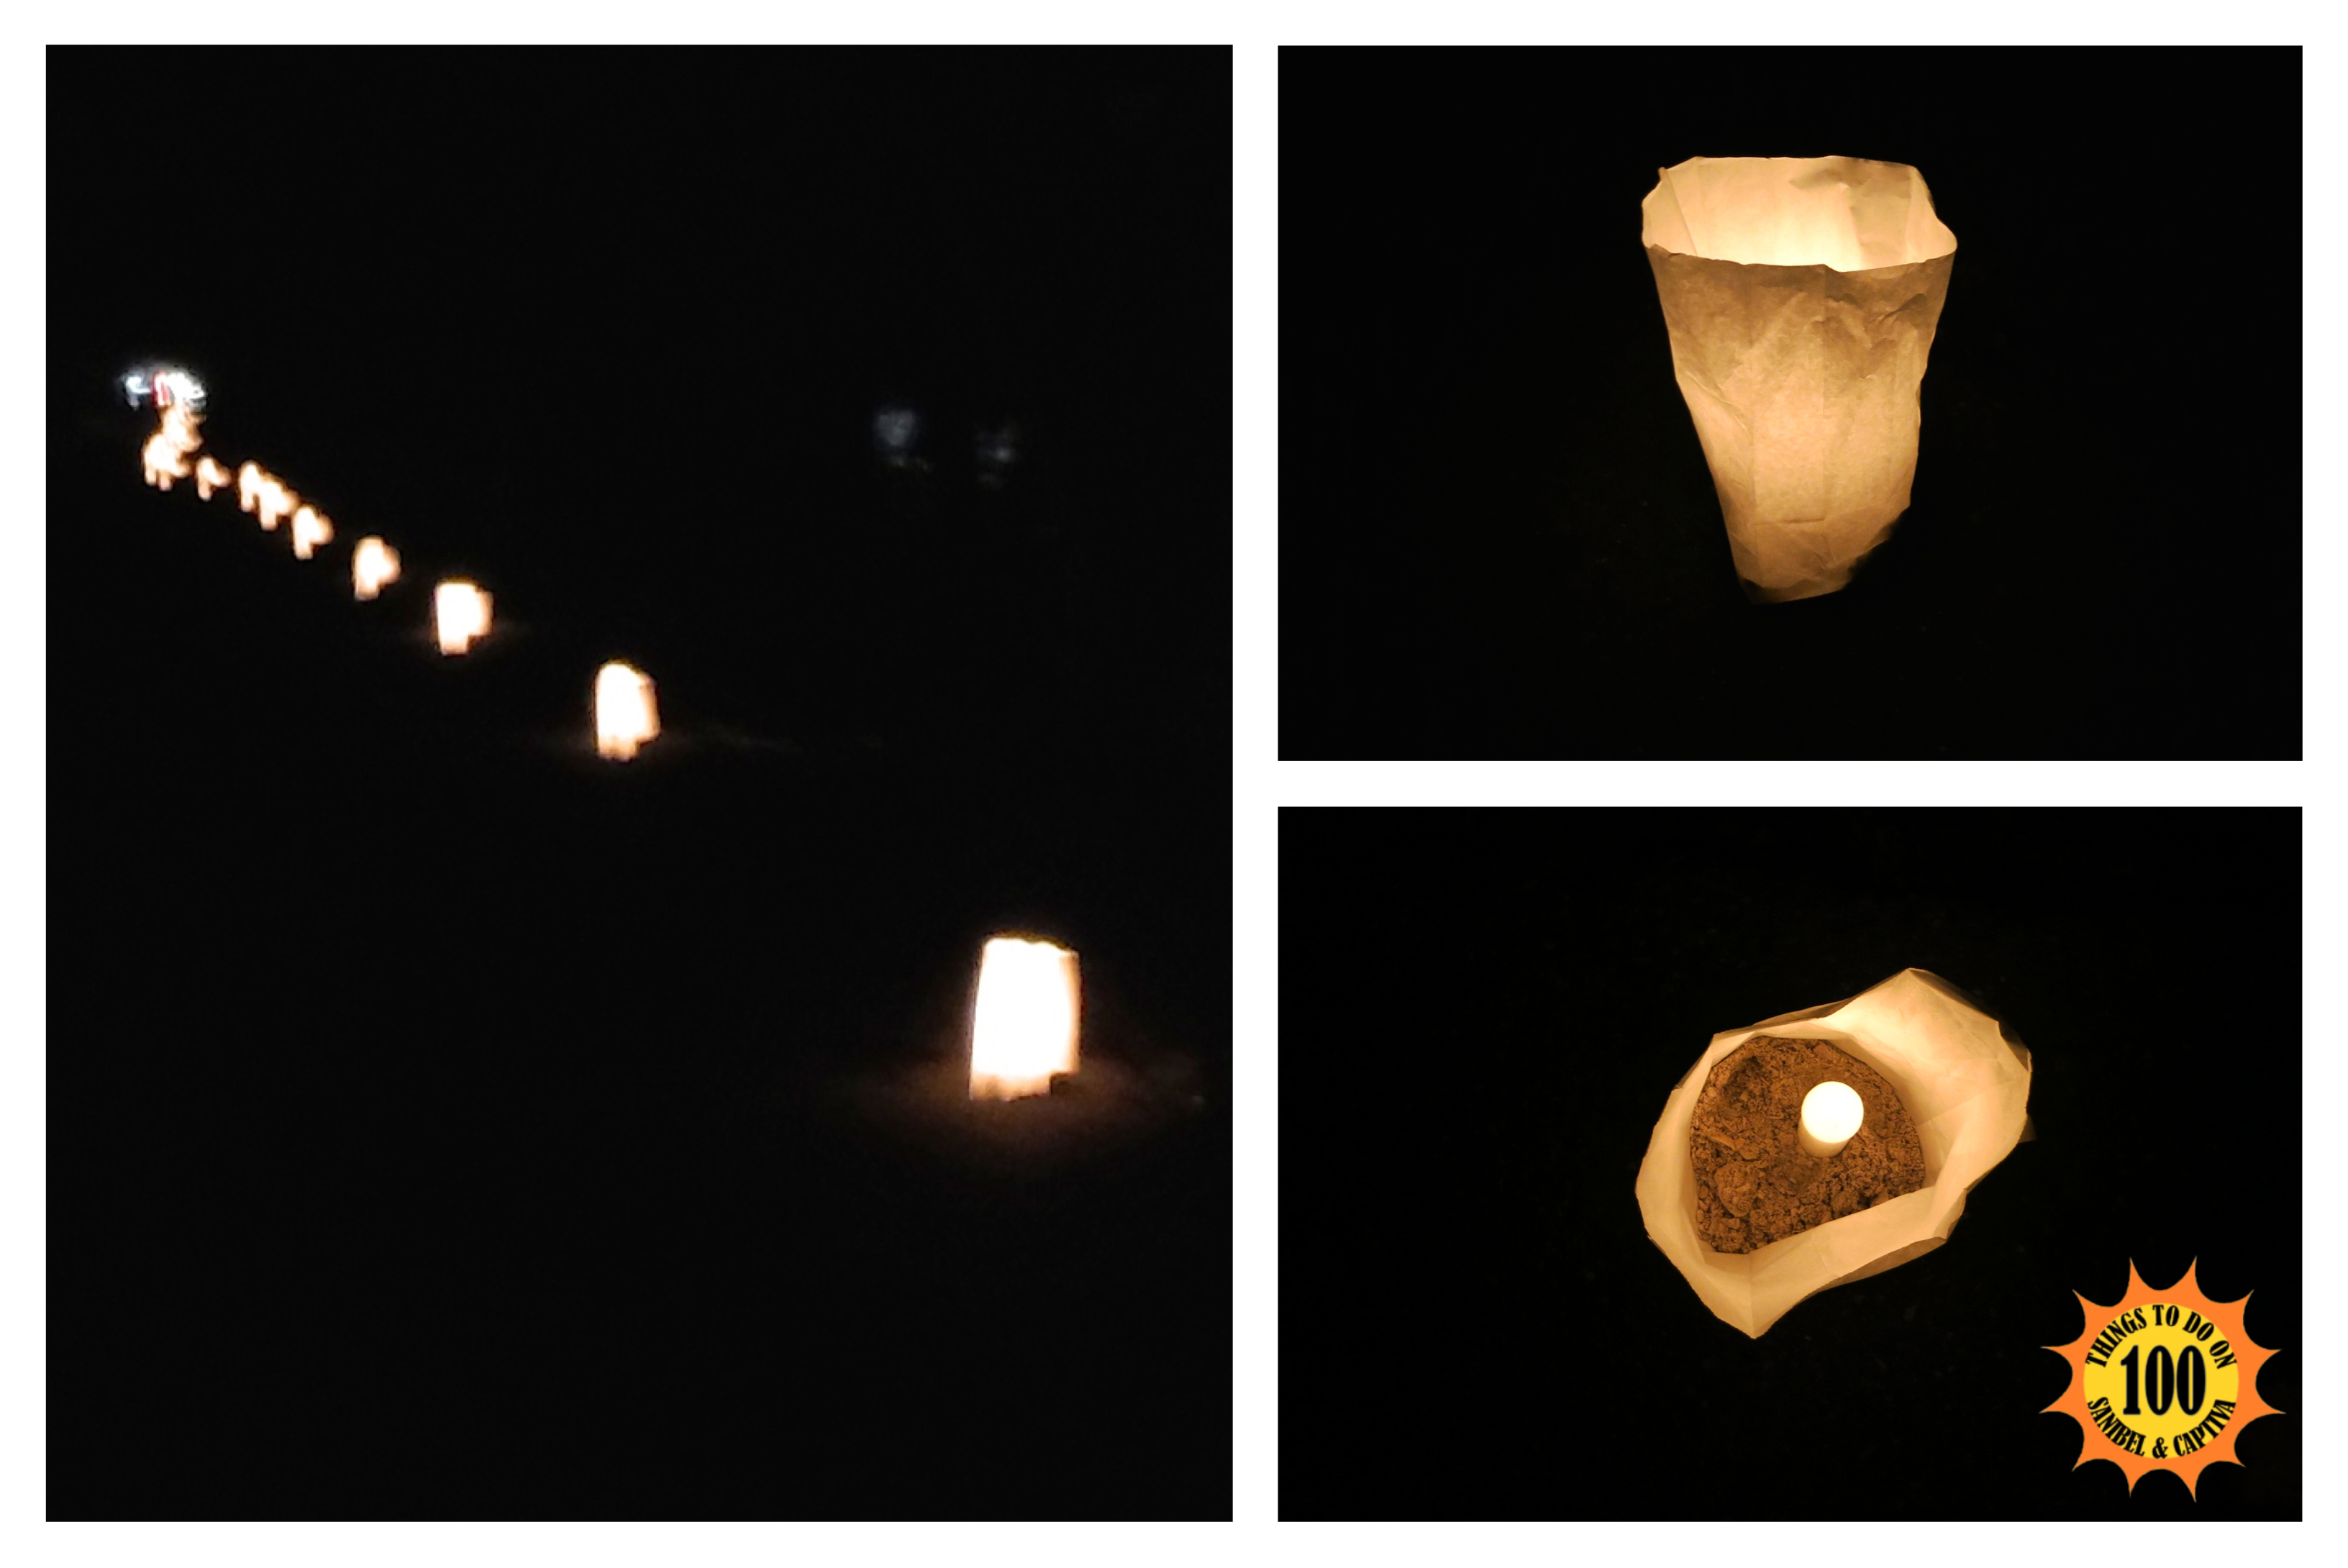 http://assets.site-static.com/userFiles/421/image/Events/Sanibel_Luminaries.jpg